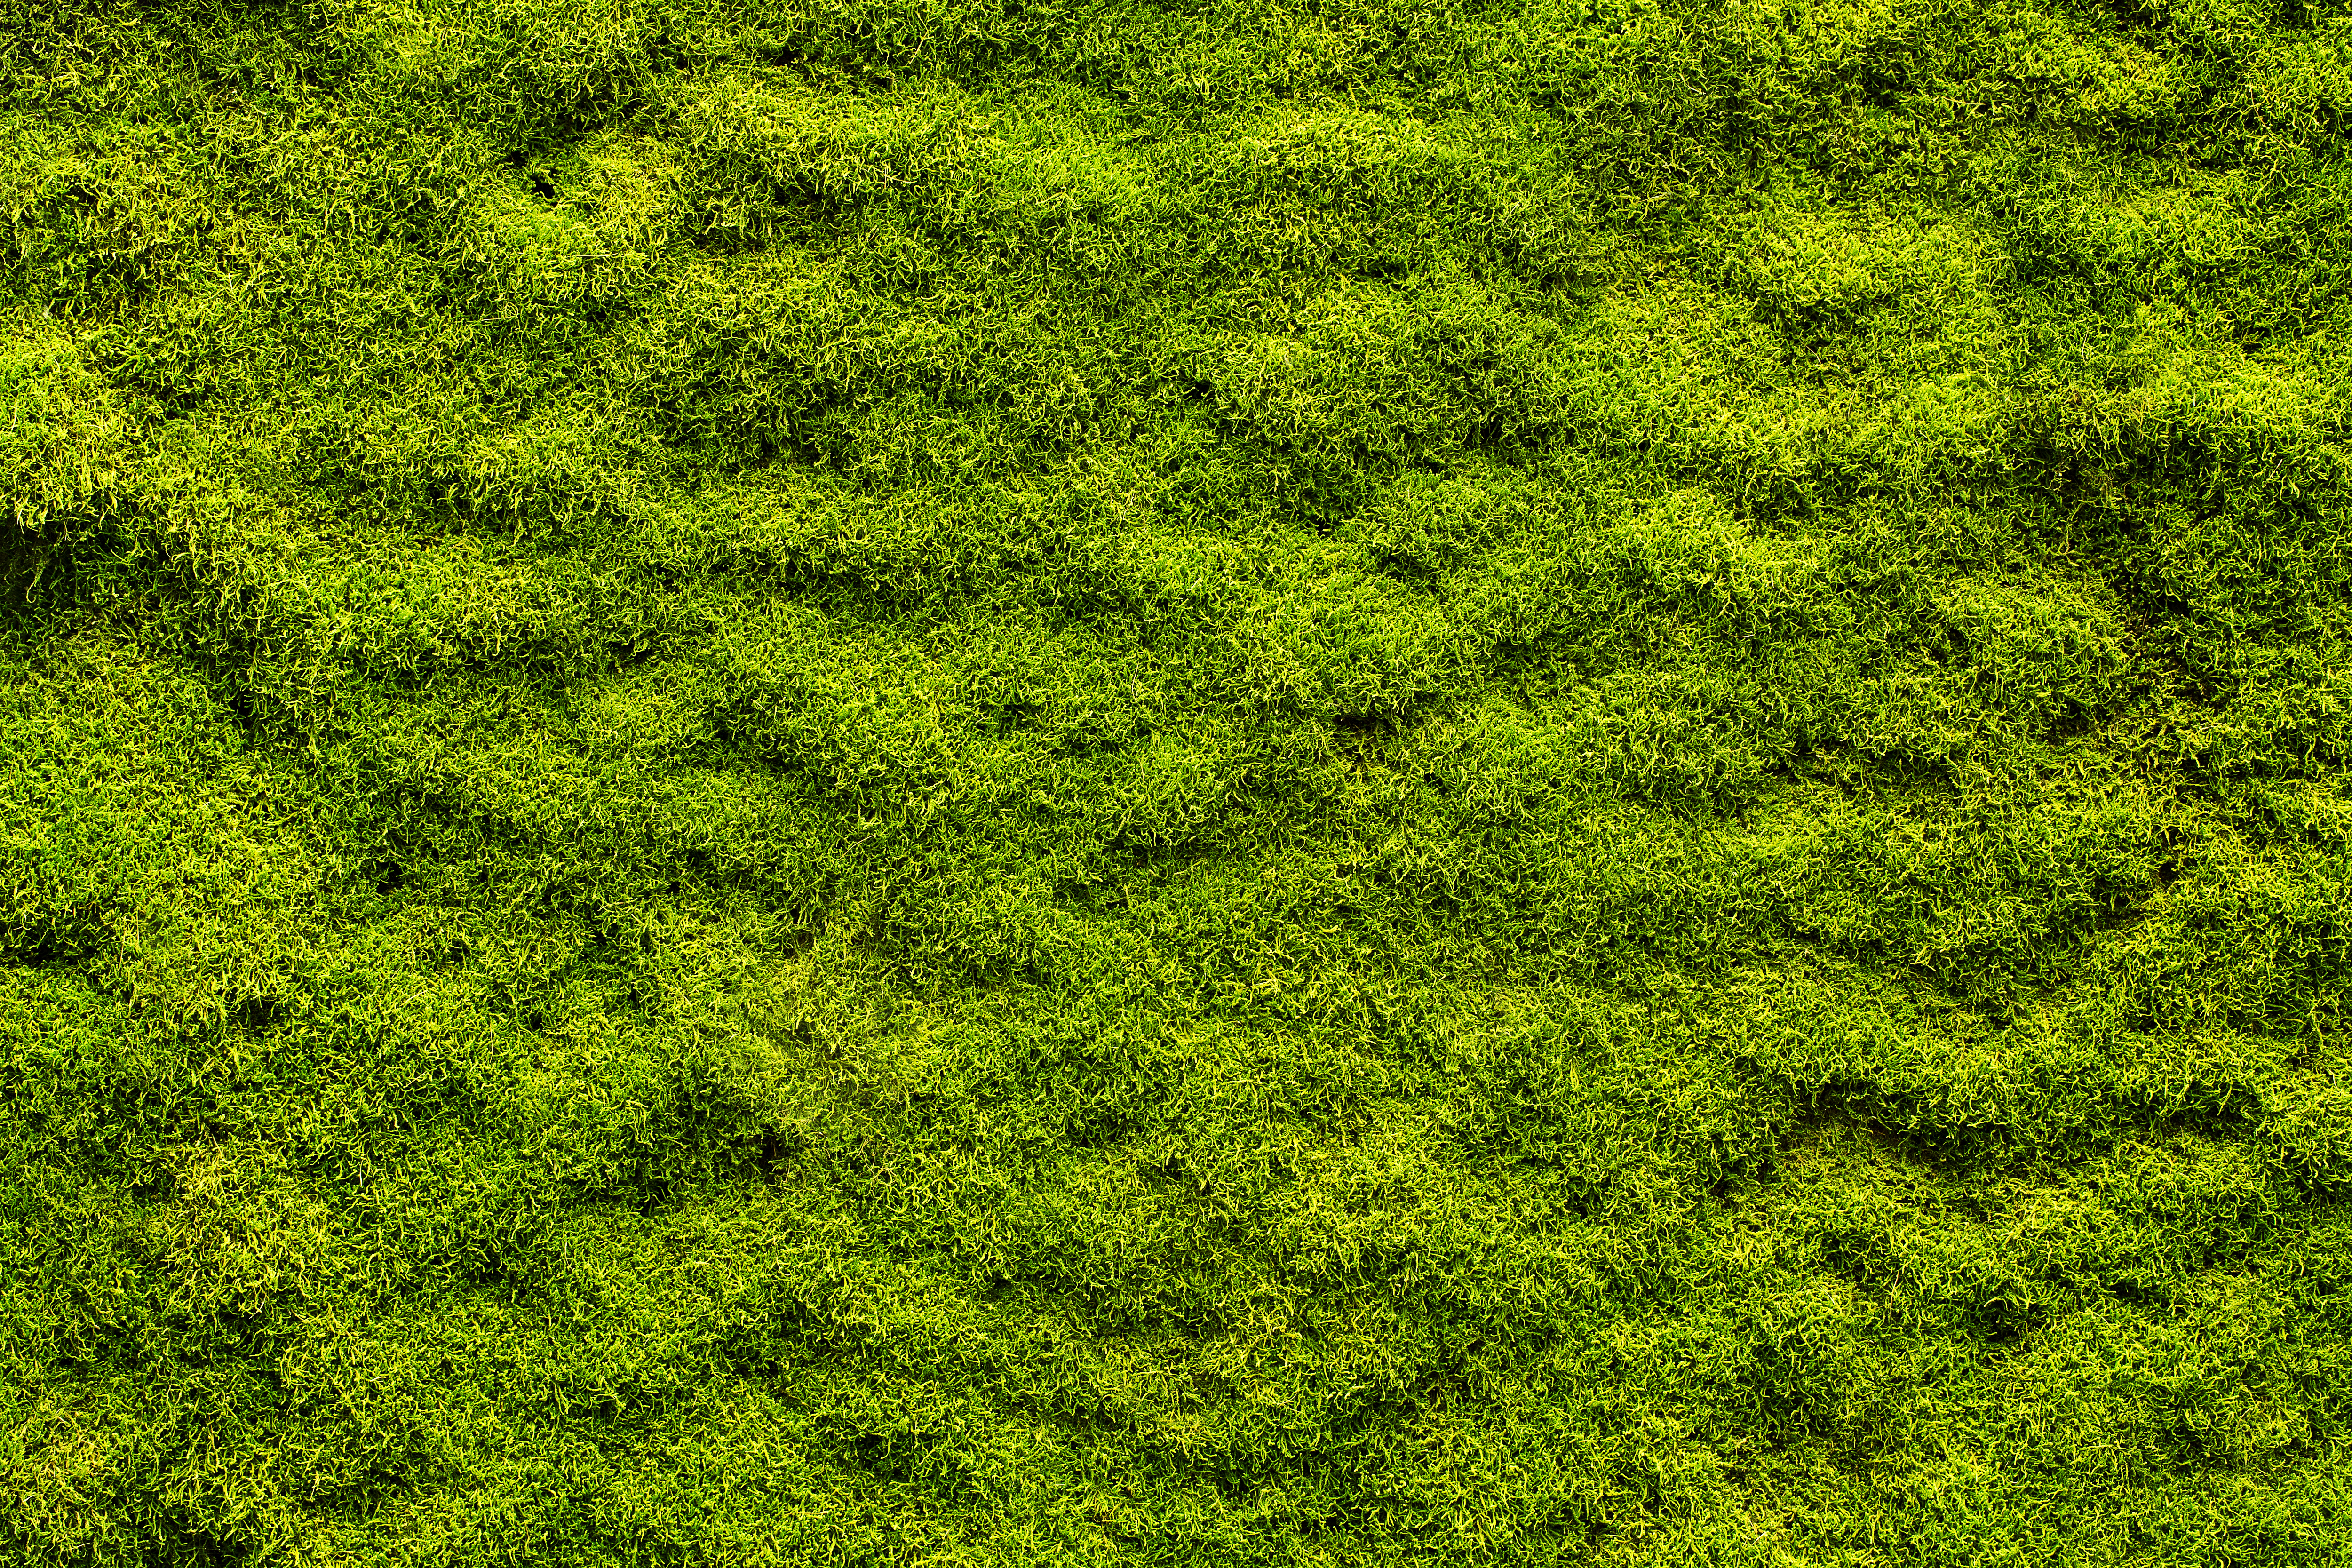 Peat Moss on Grass | Home Guides | SF Gate